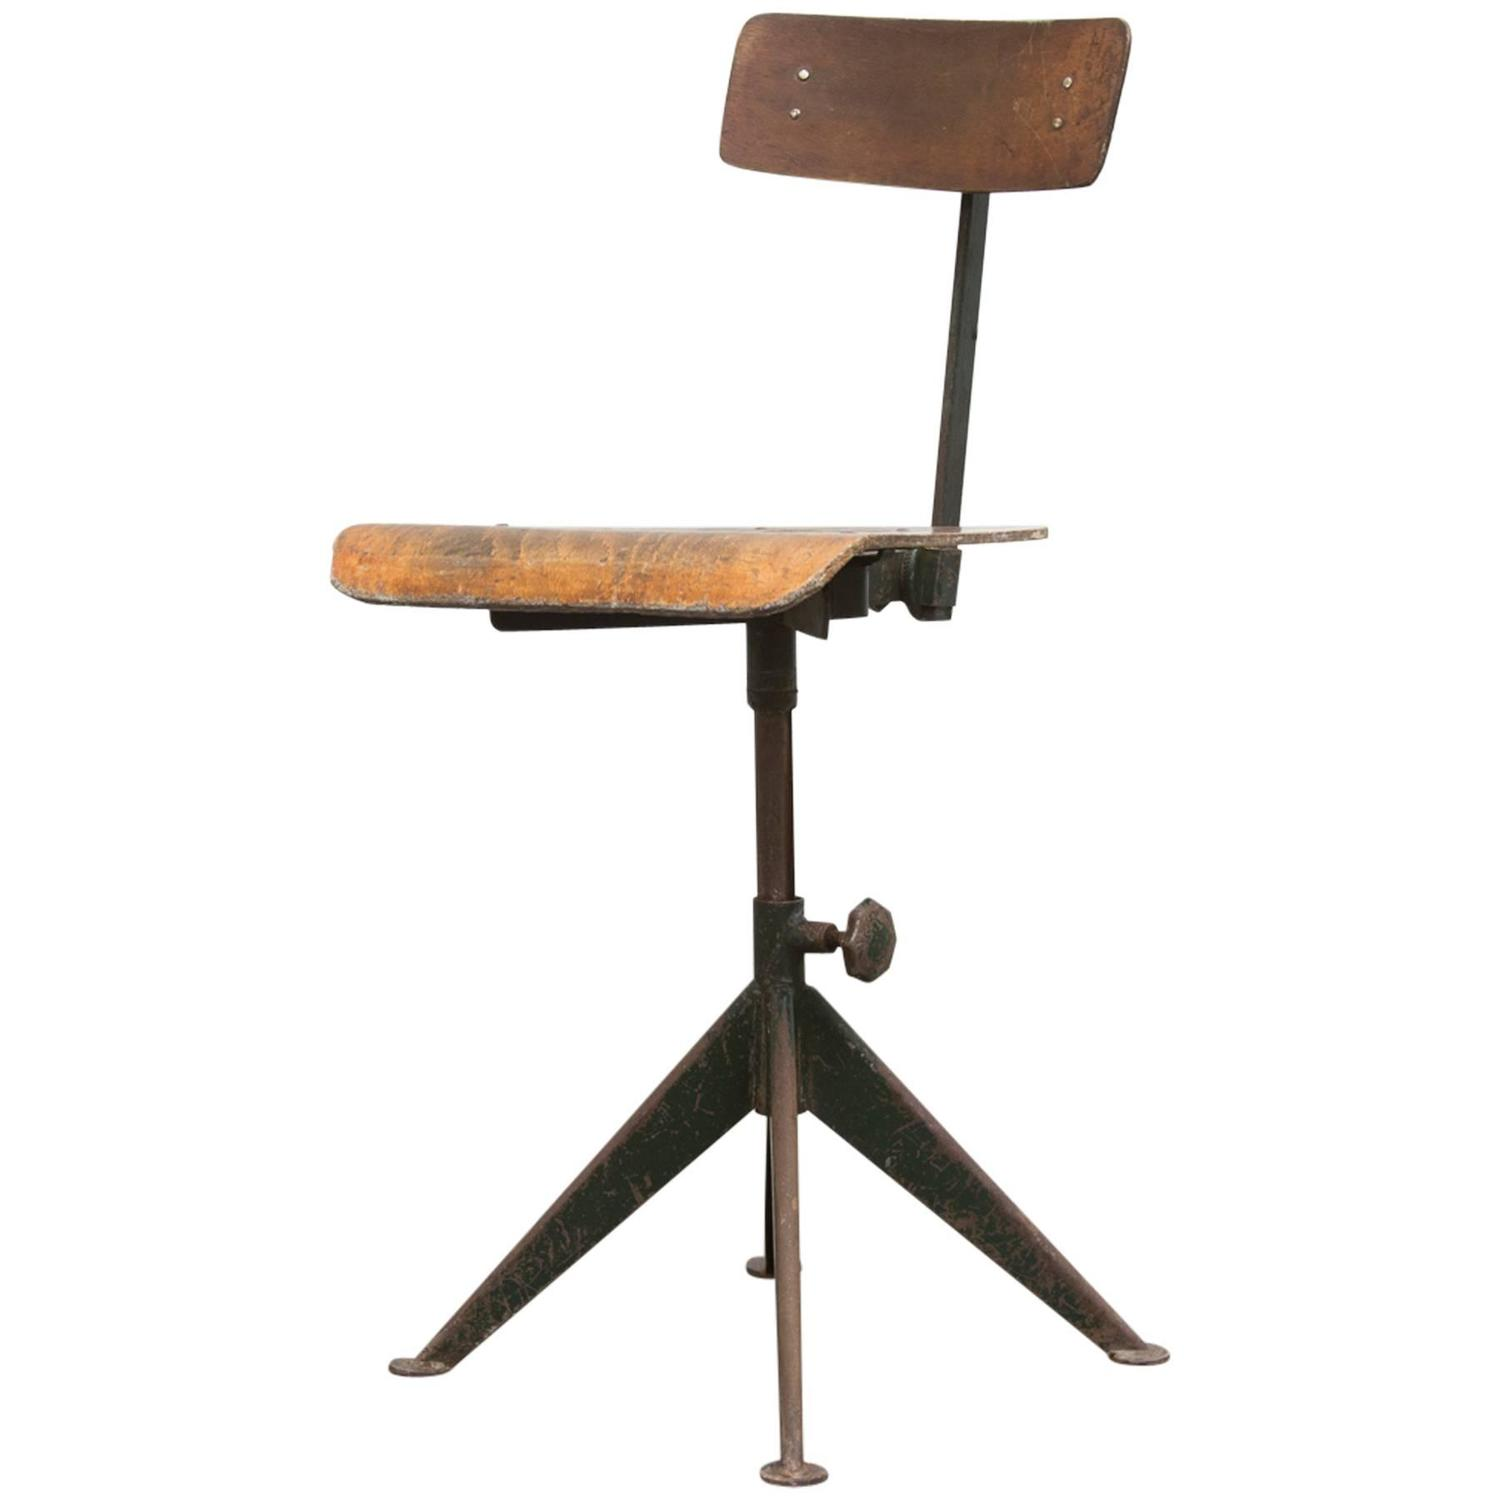 Jean Prouve style Industrial Drafting Chair For Sale at 1stdibs